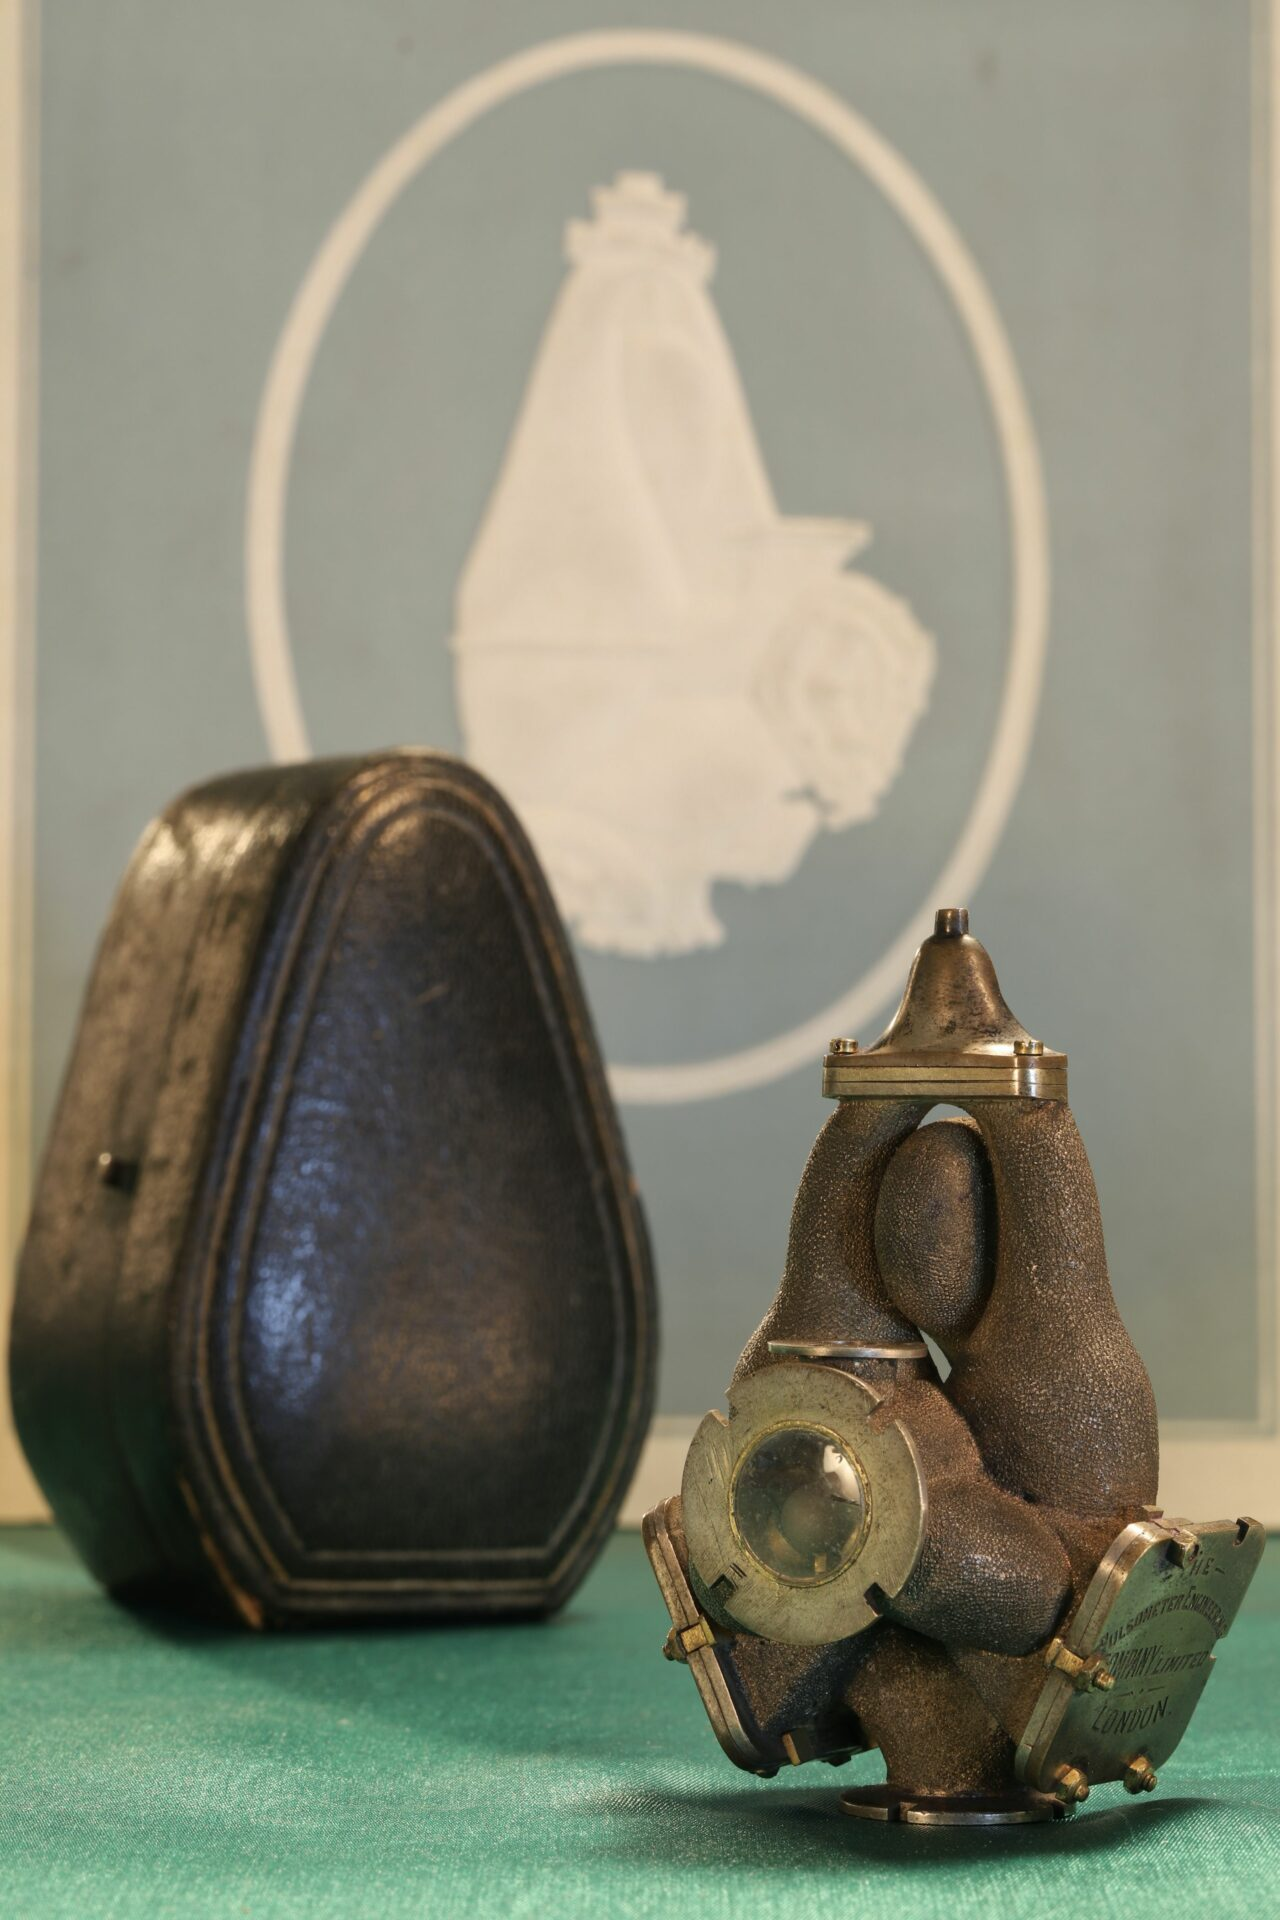 Image of front of Pulsometer Steam Pump Model c1905 taken from righthand side together with travel case and catalogue